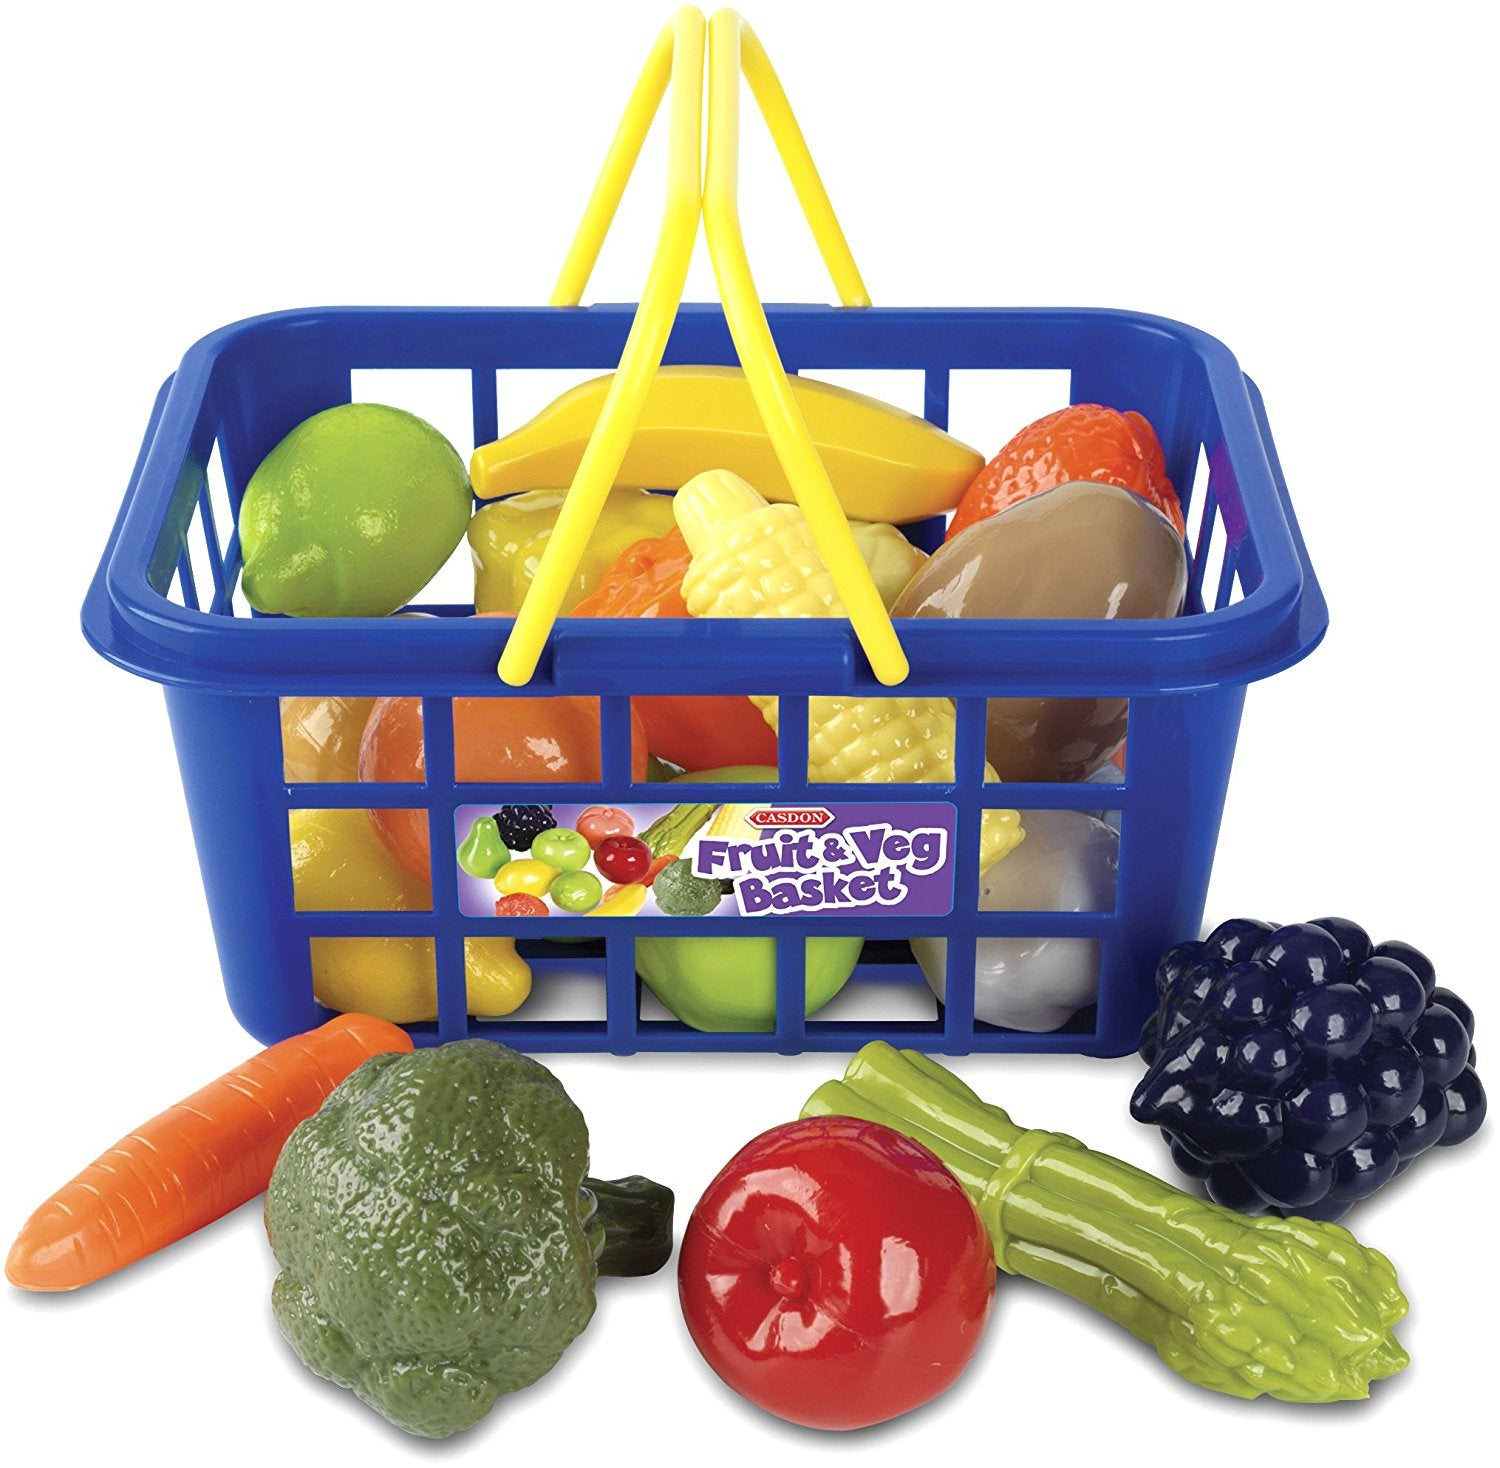 Casdon Little Shopper Fruit & Veg Basket